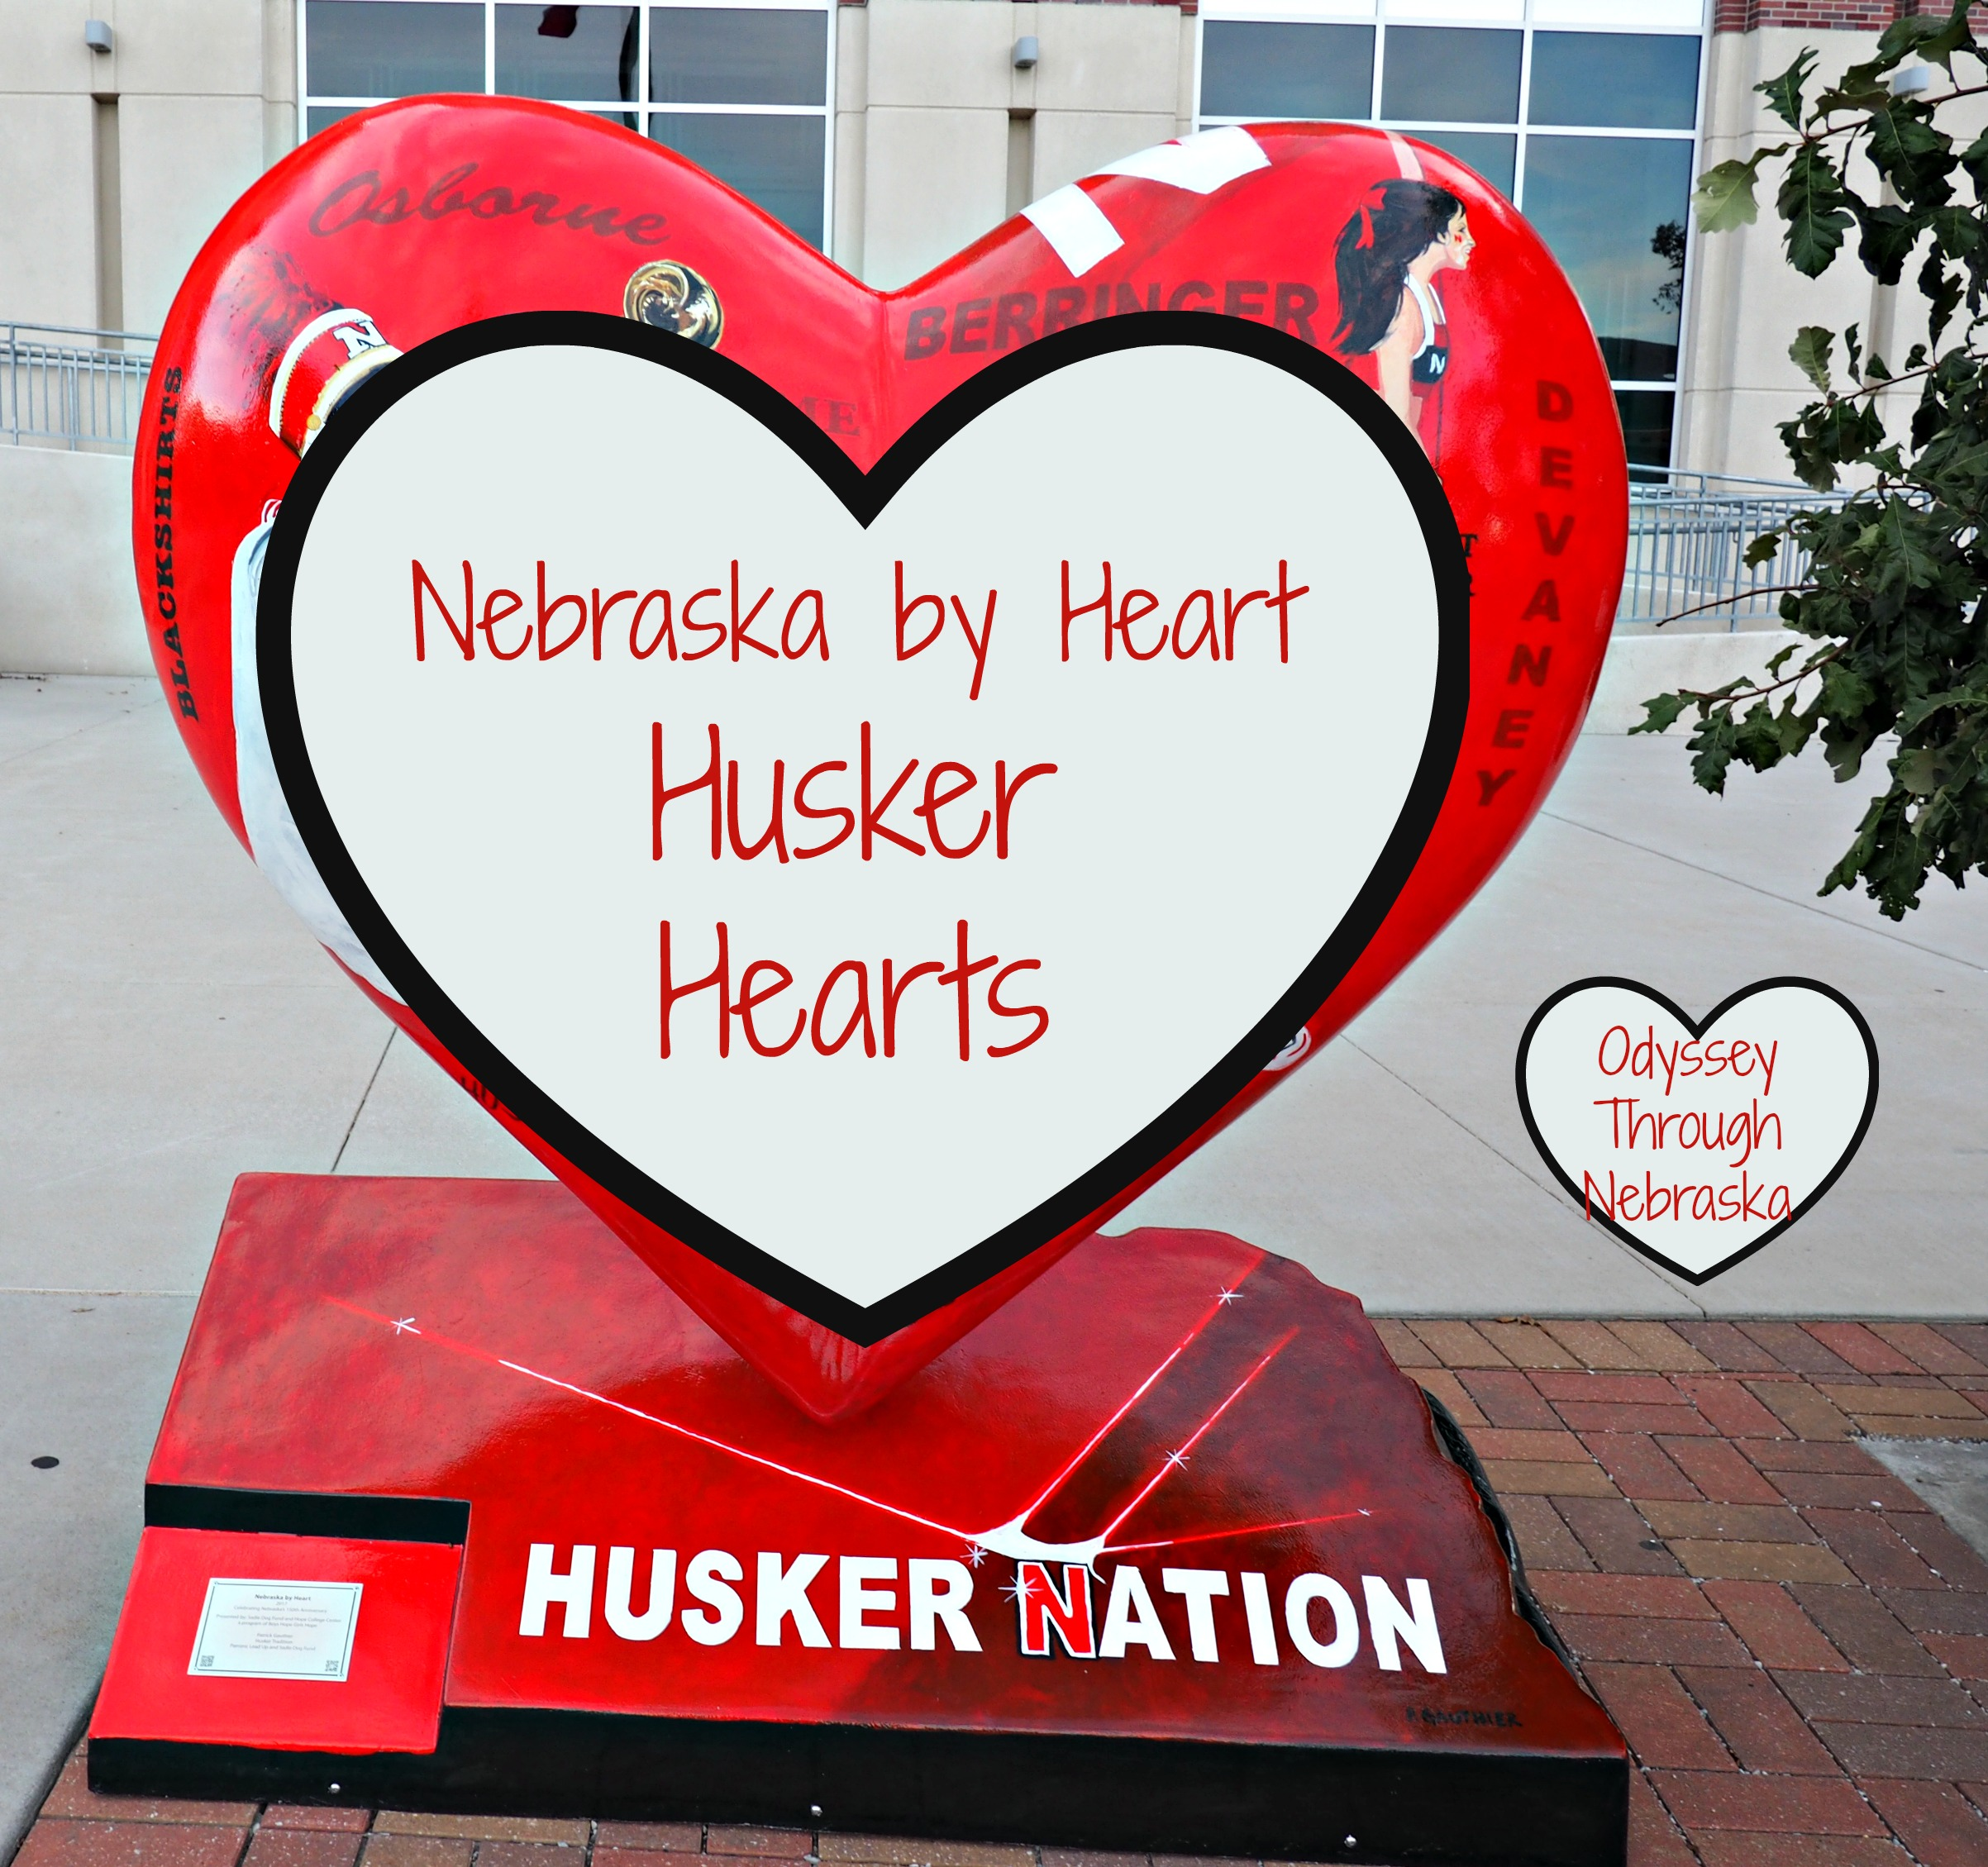 Nebraska by Heart Husker Hearts